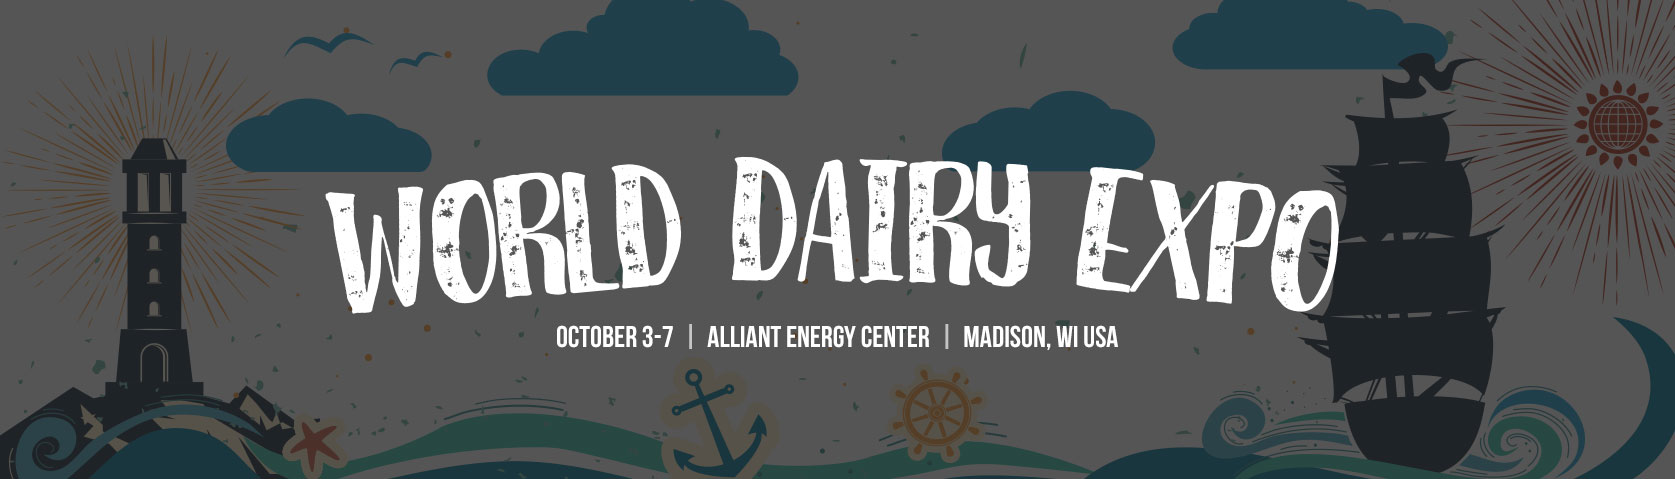 home page world dairy expo world dairy expo october 3 7